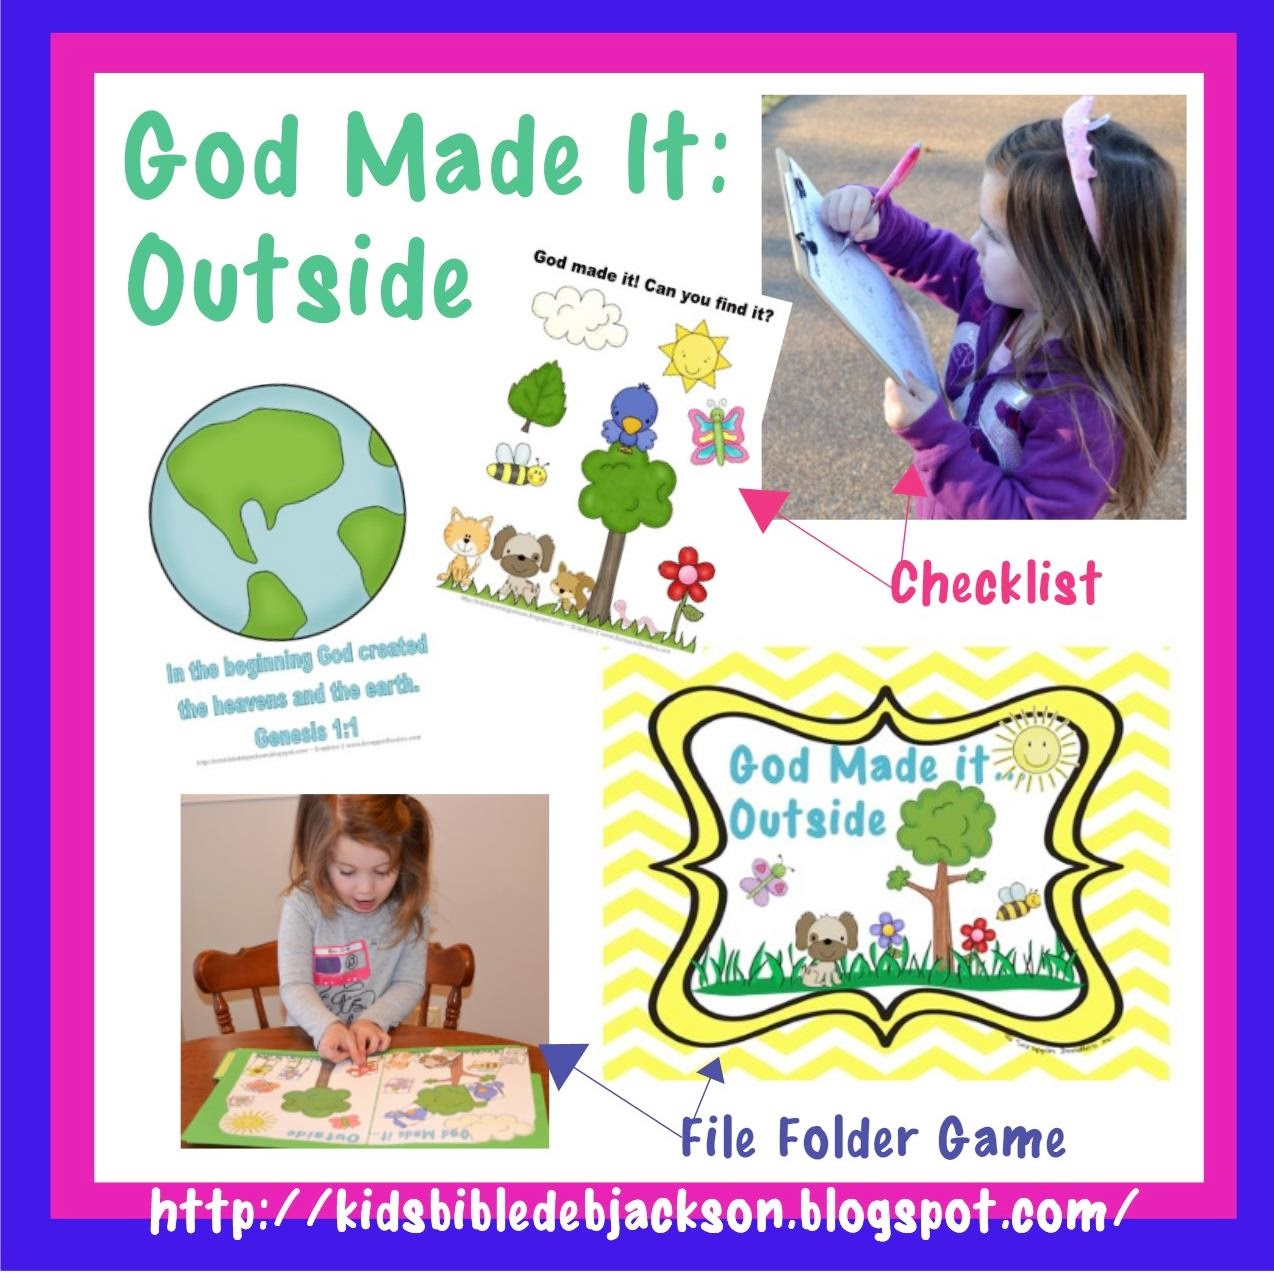 http://kidsbibledebjackson.blogspot.com/2014/04/god-made-it-outside-checklist.html